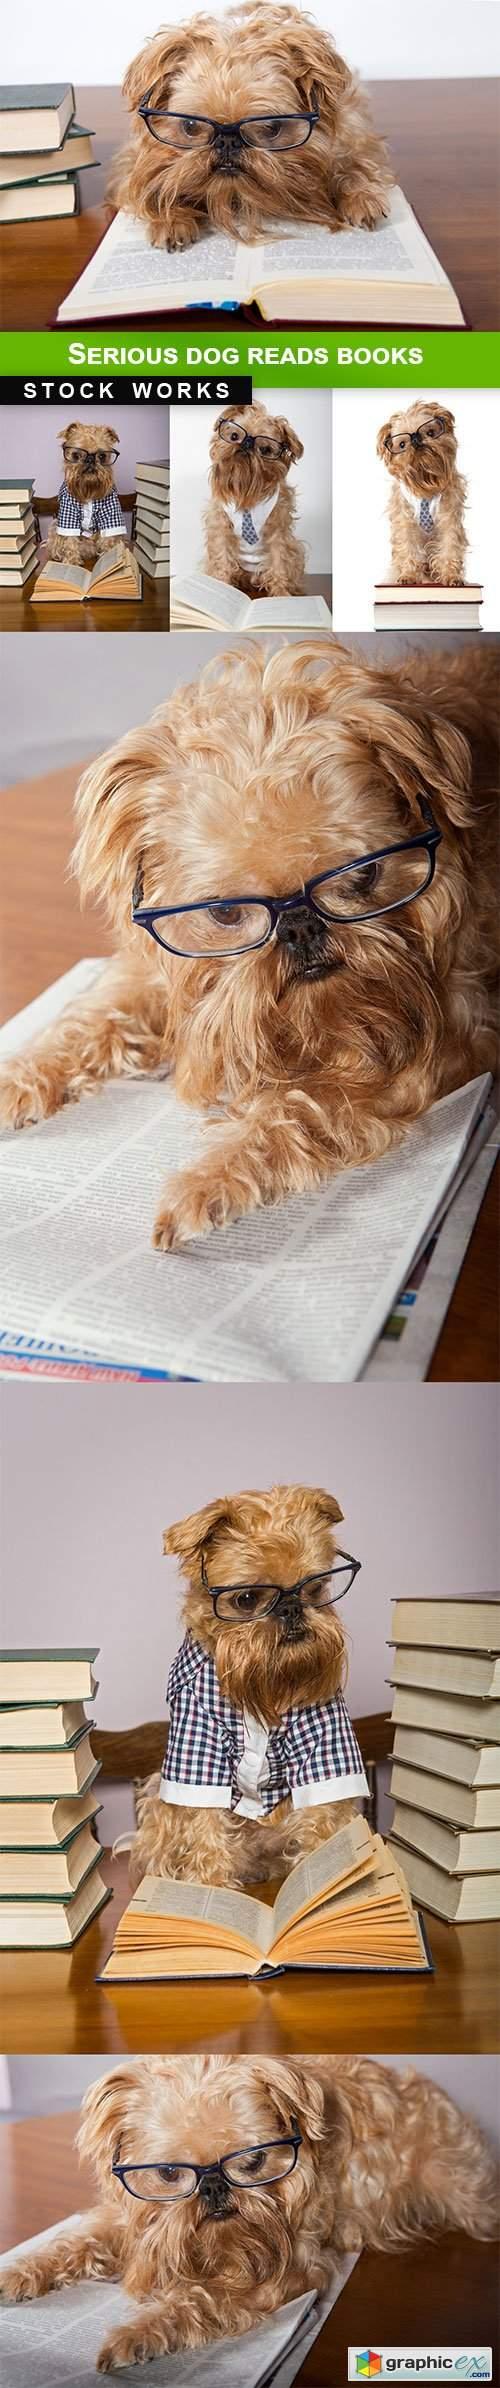 Serious dog reads books - 7 UHQ JPEG